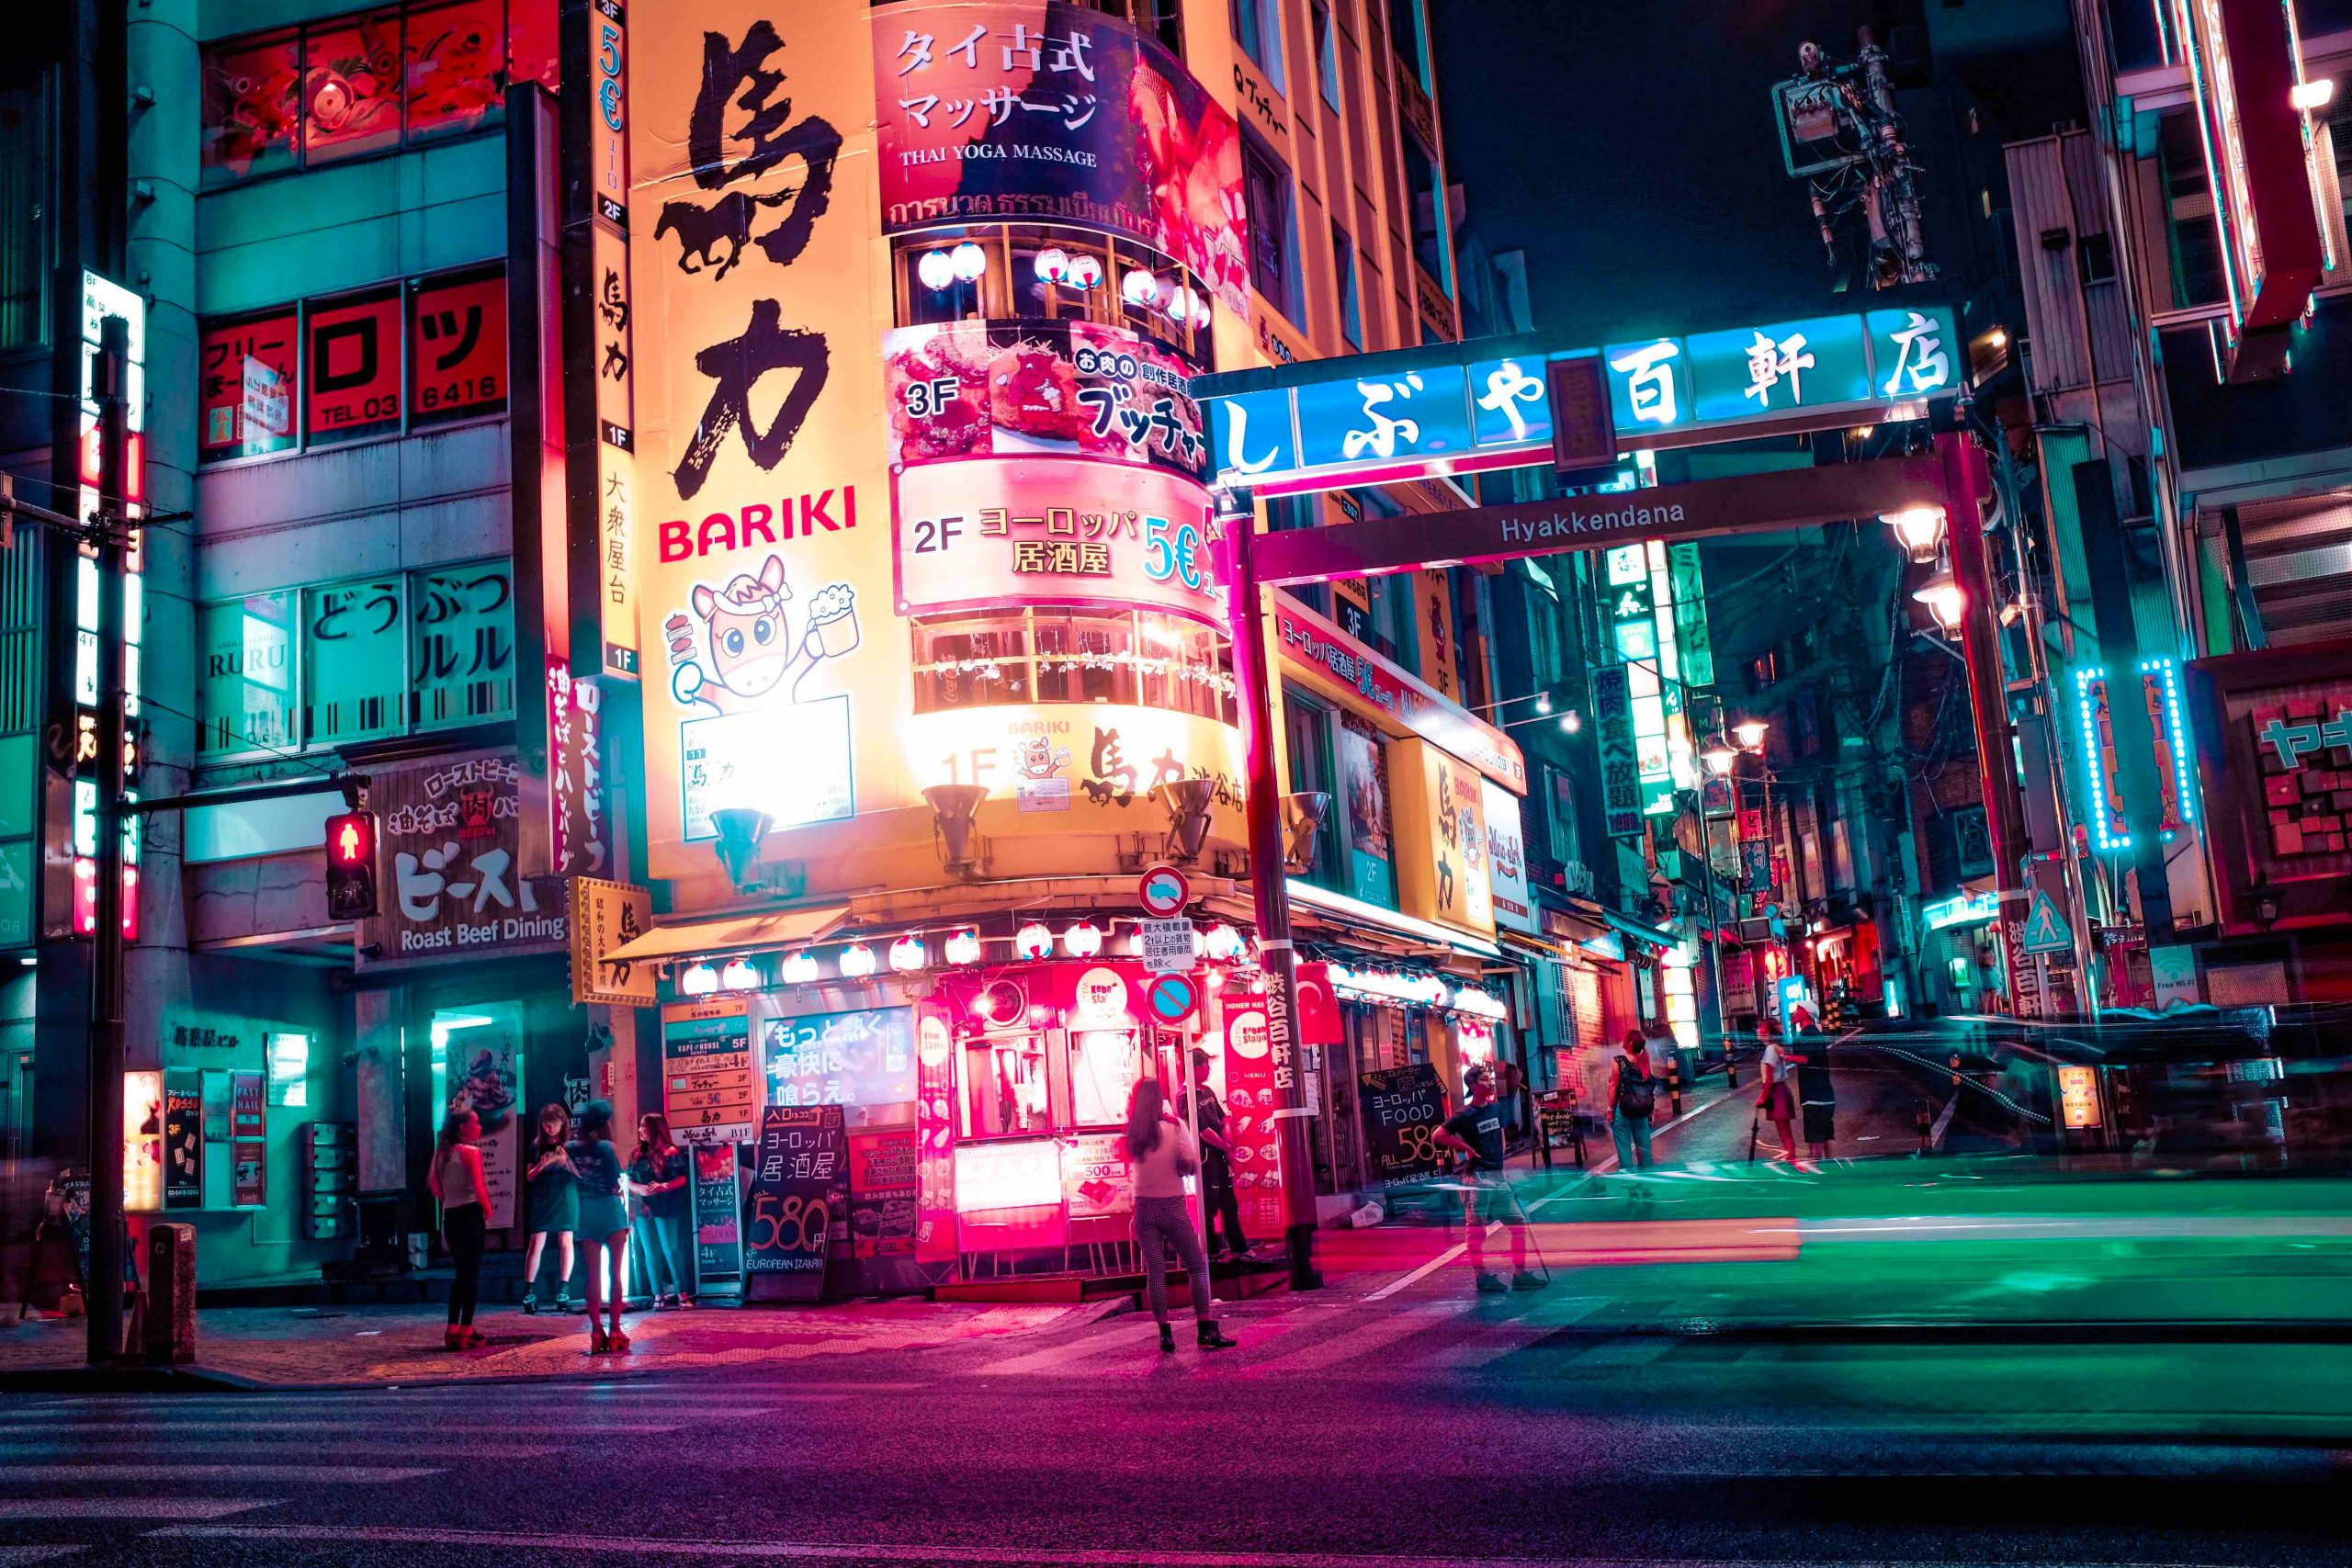 This is a picture a Tokyo night street scene a post called Competitive Intelligence expert Professor Fumiyuki Takahashi of the Japan University of Economics by Octopus is a Competitive Intelligence Competitor Analysis & Strategy consulting firm focused on creating certainty, insight, competitive advantage & significant growth